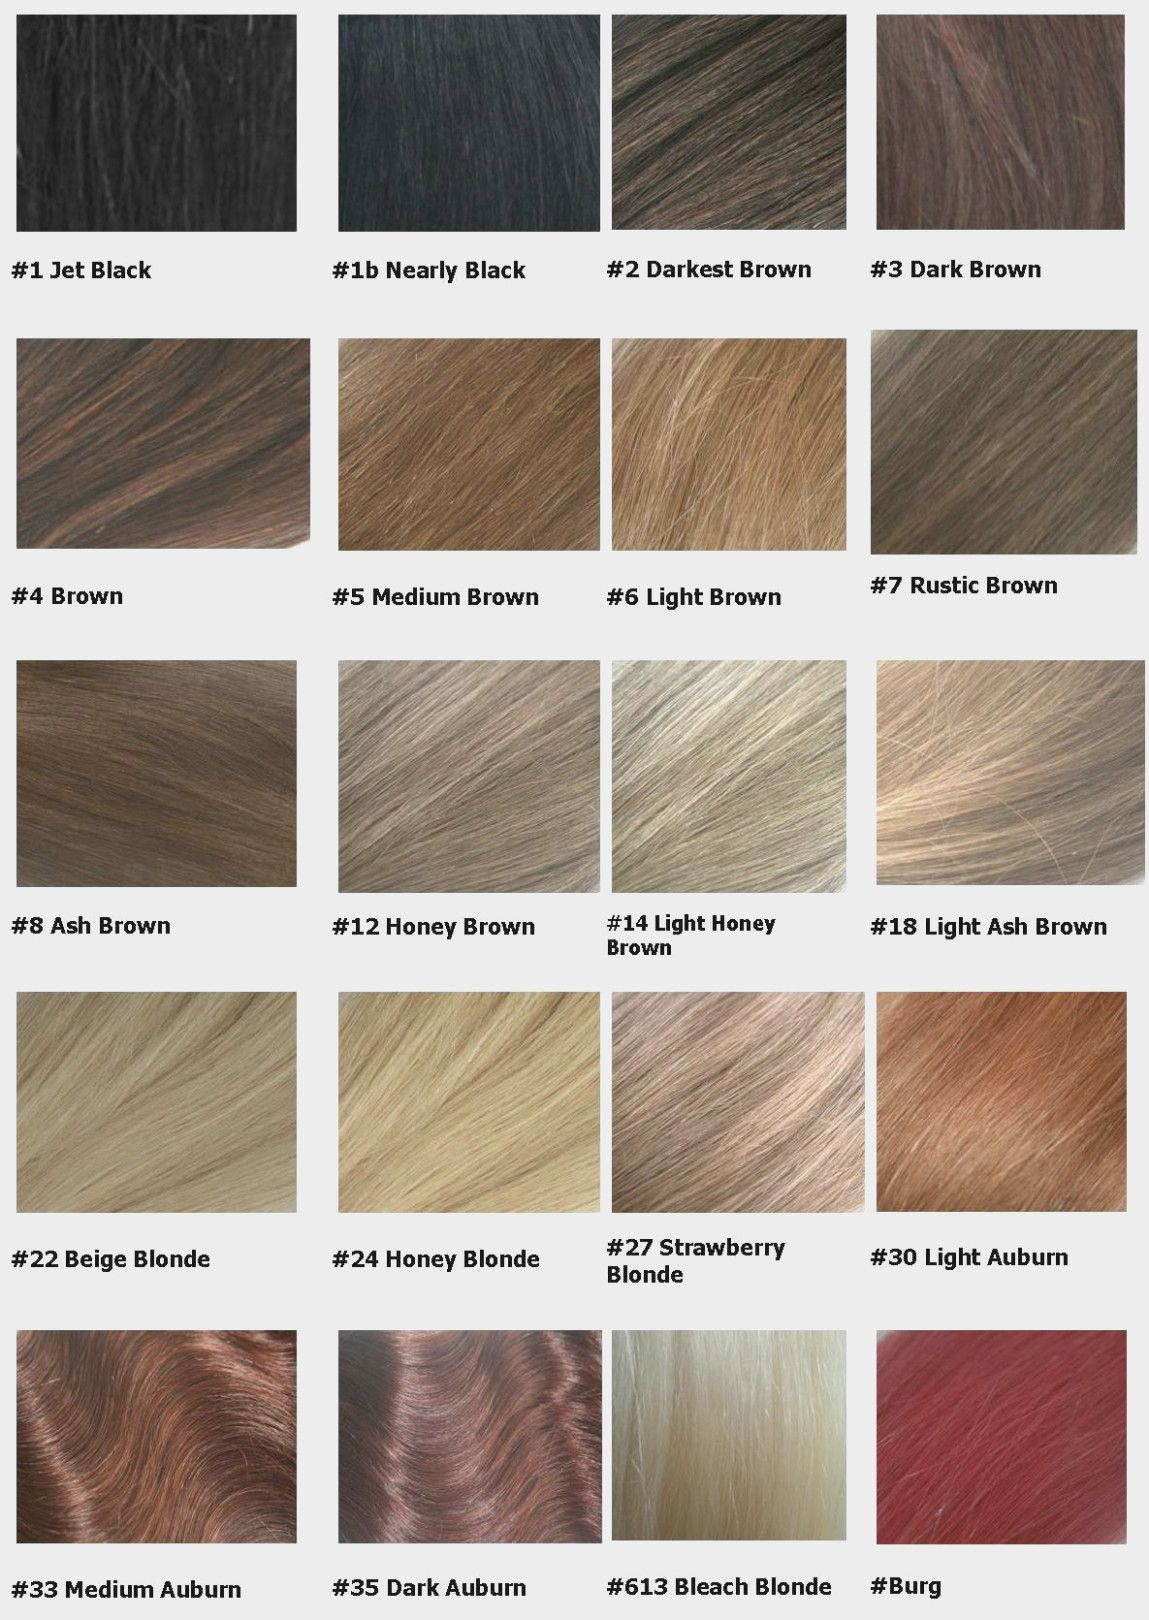 Clairol Professional Hair Color Chart Er Sa Kjent Men Hvorfor